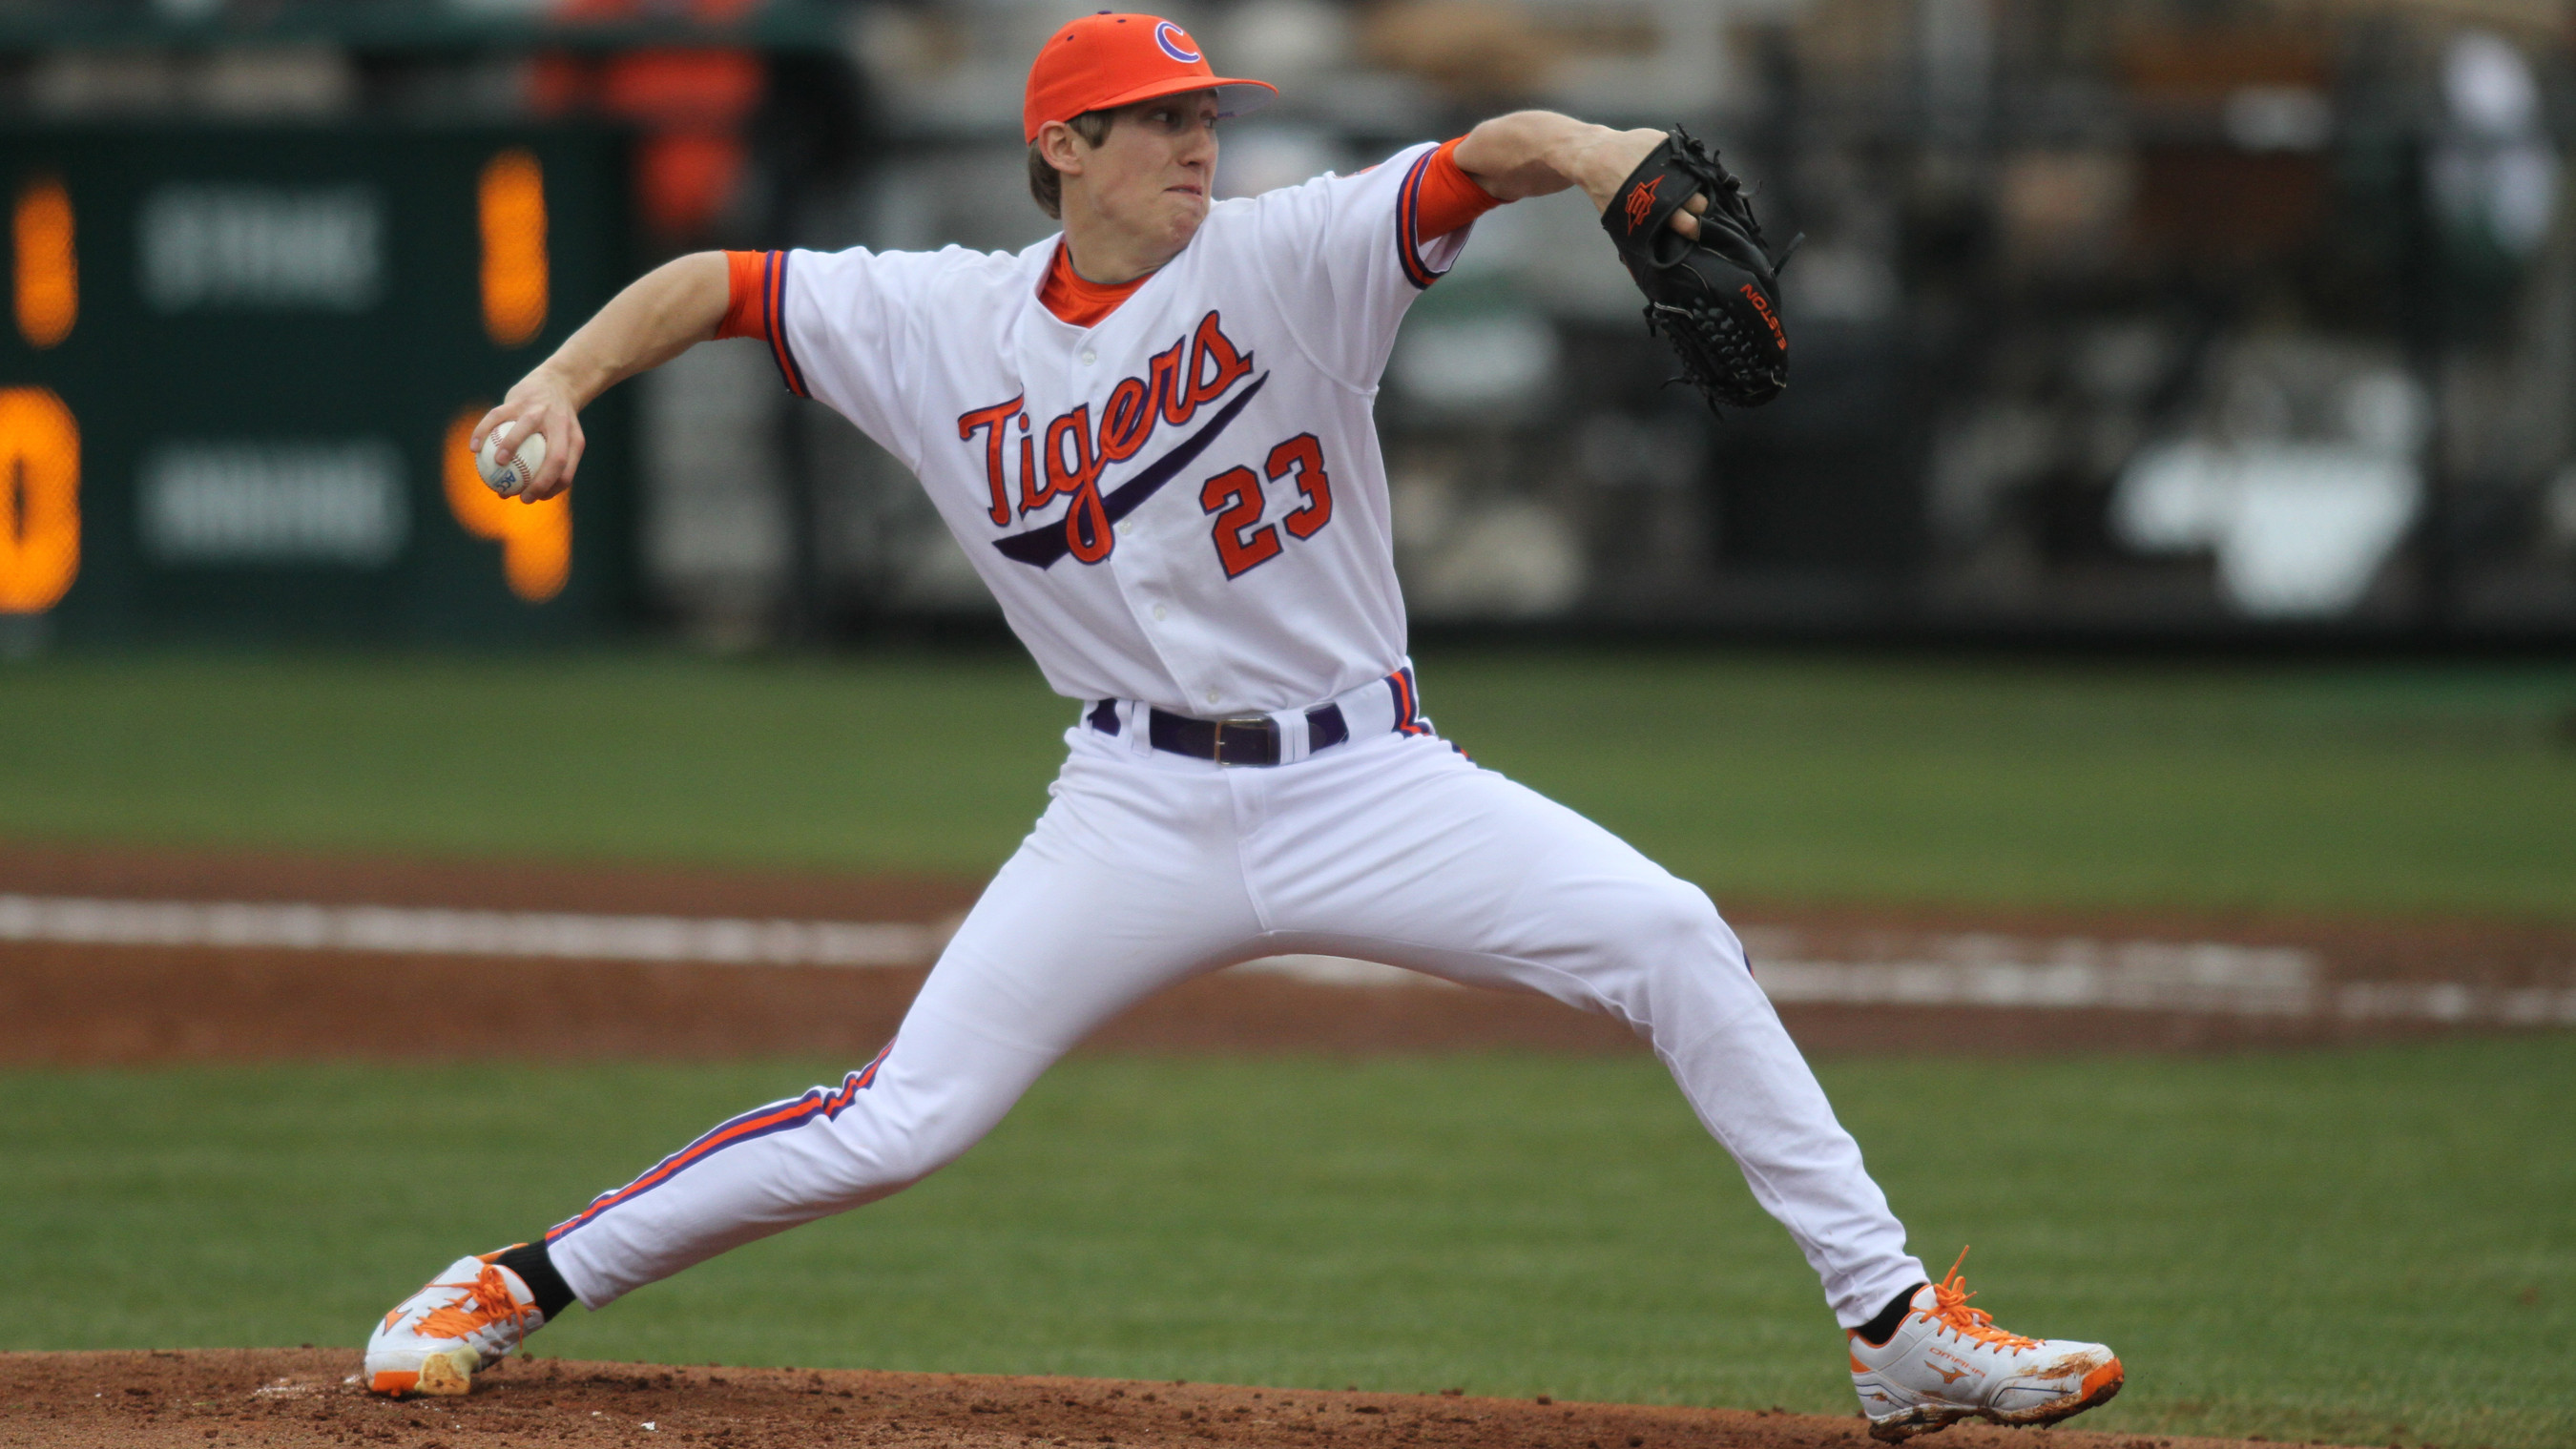 Tigers to Face #7 South Carolina Friday-Sunday